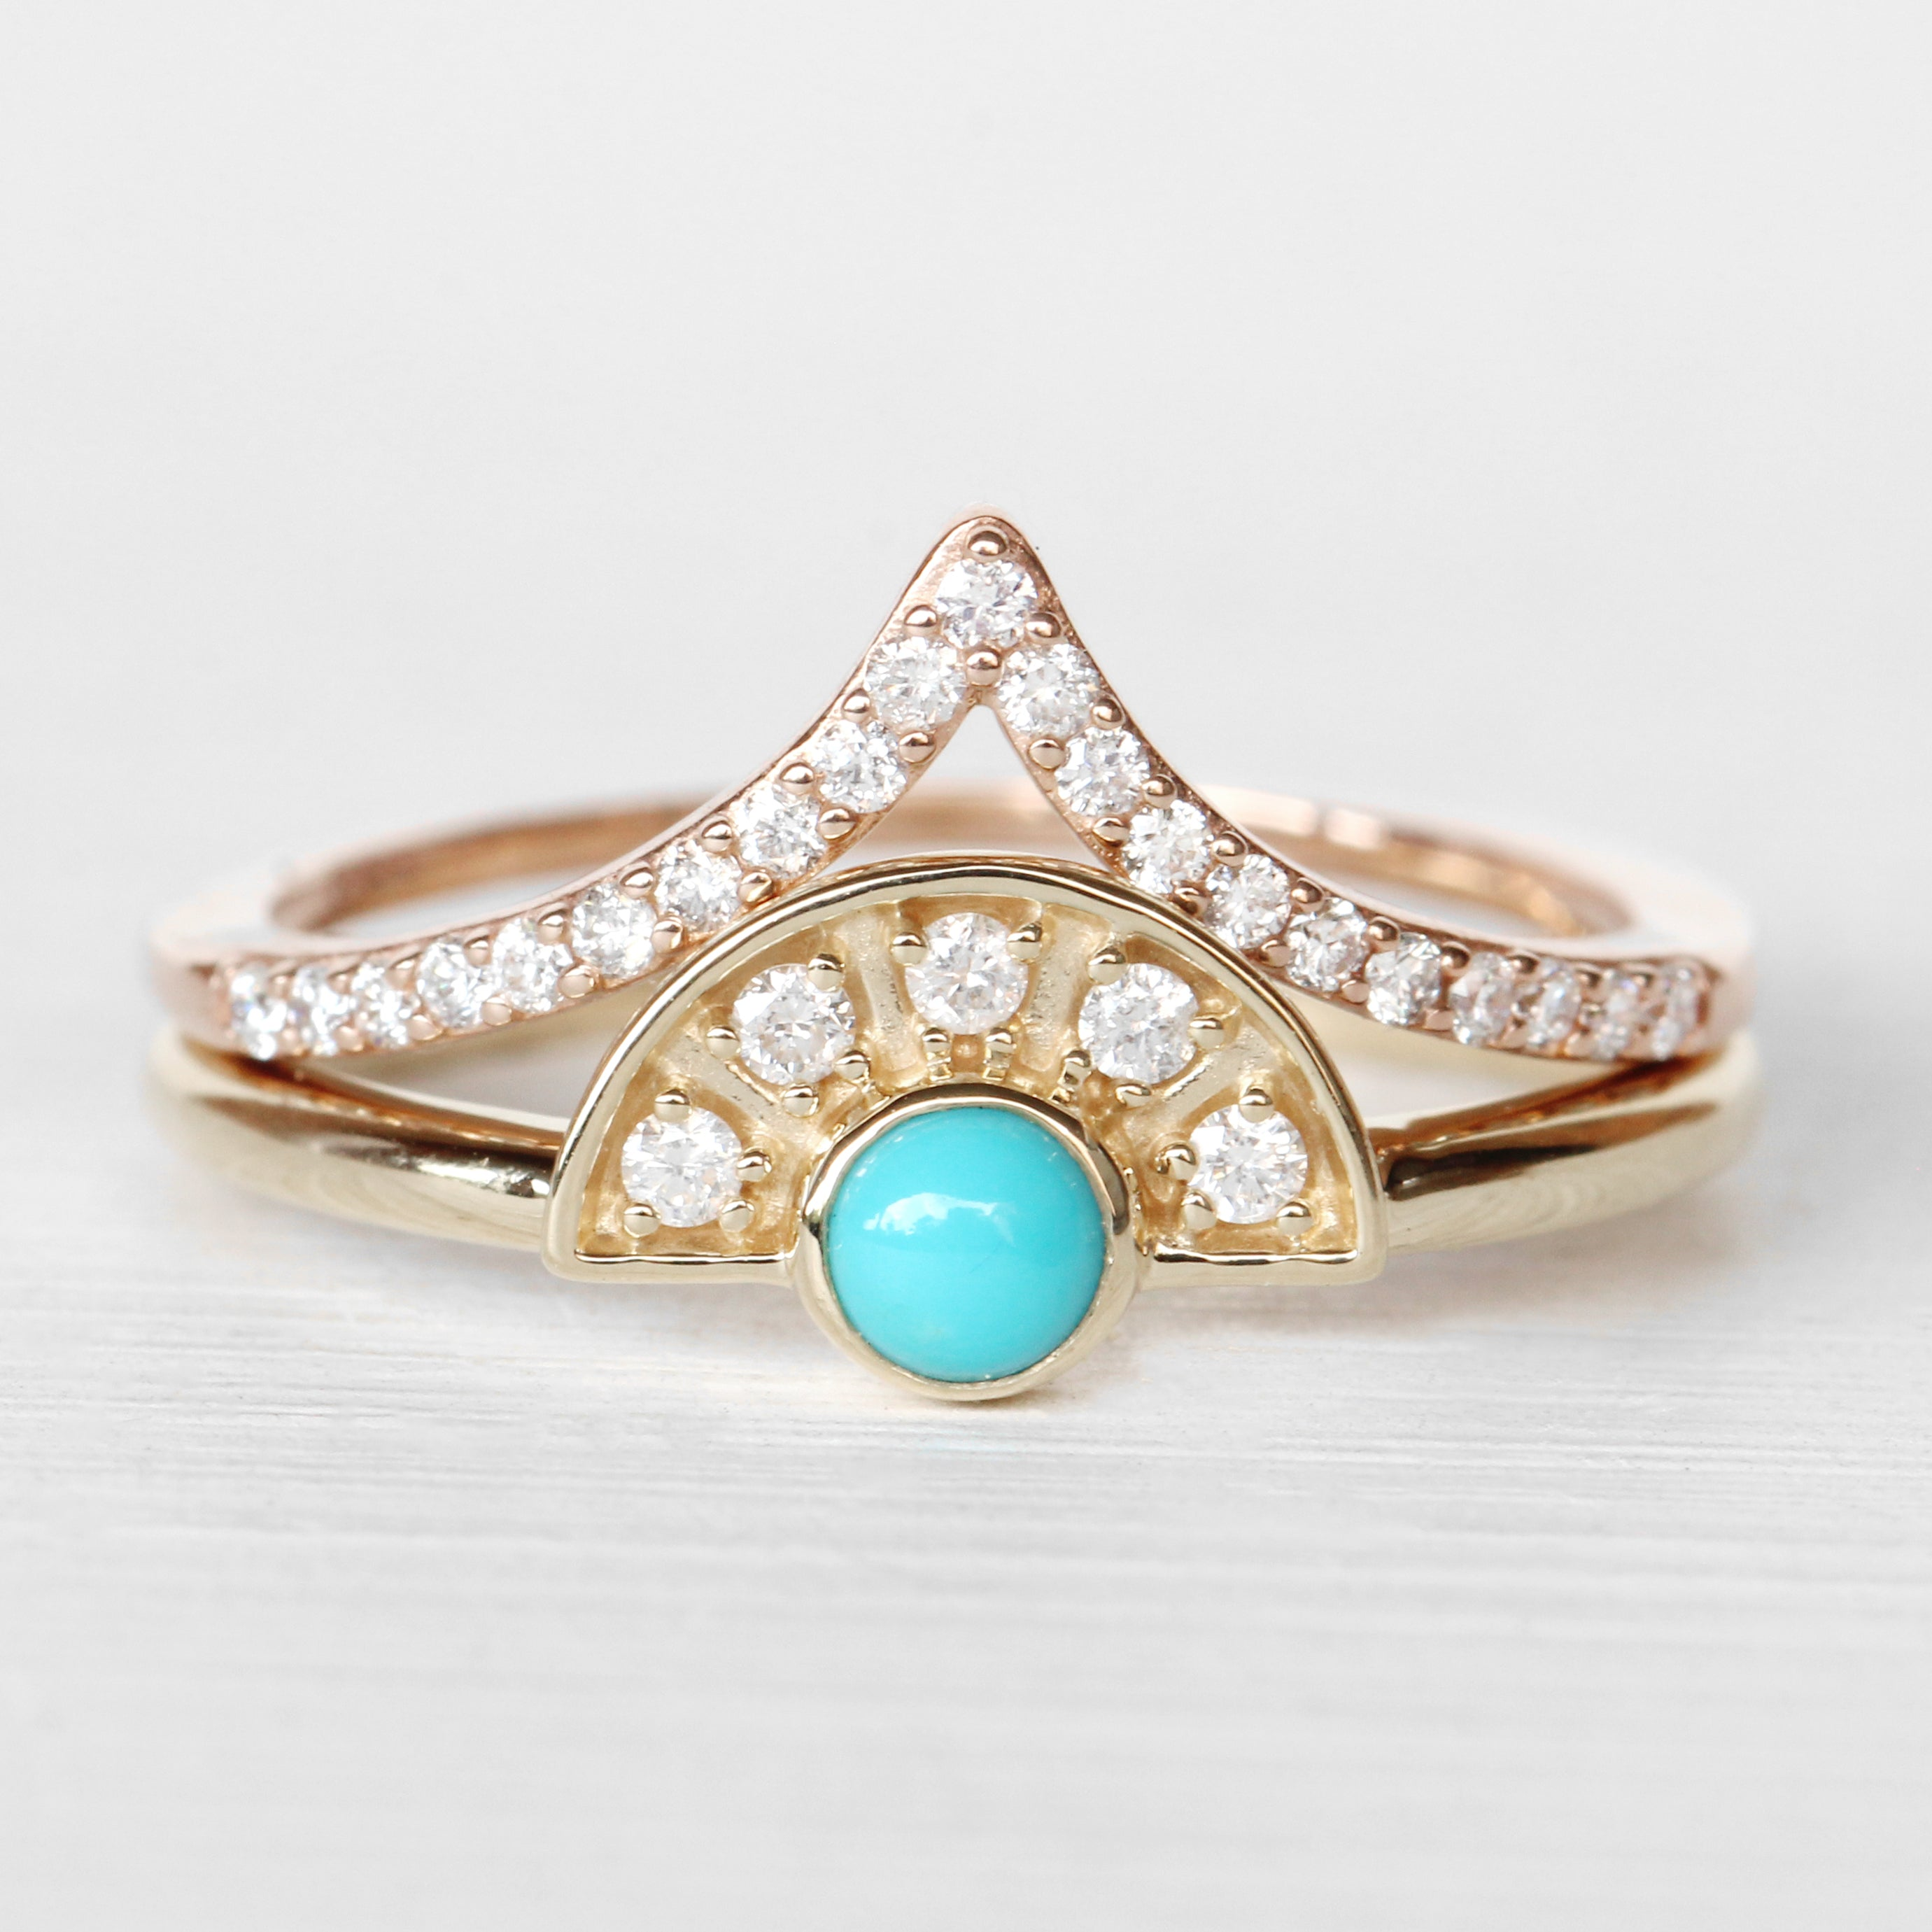 Dottie Turquoise + Diamond Stackable or Wedding Ring - Your choice of metal - Custom - Salt & Pepper Celestial Diamond Engagement Rings and Wedding Bands  by Midwinter Co.